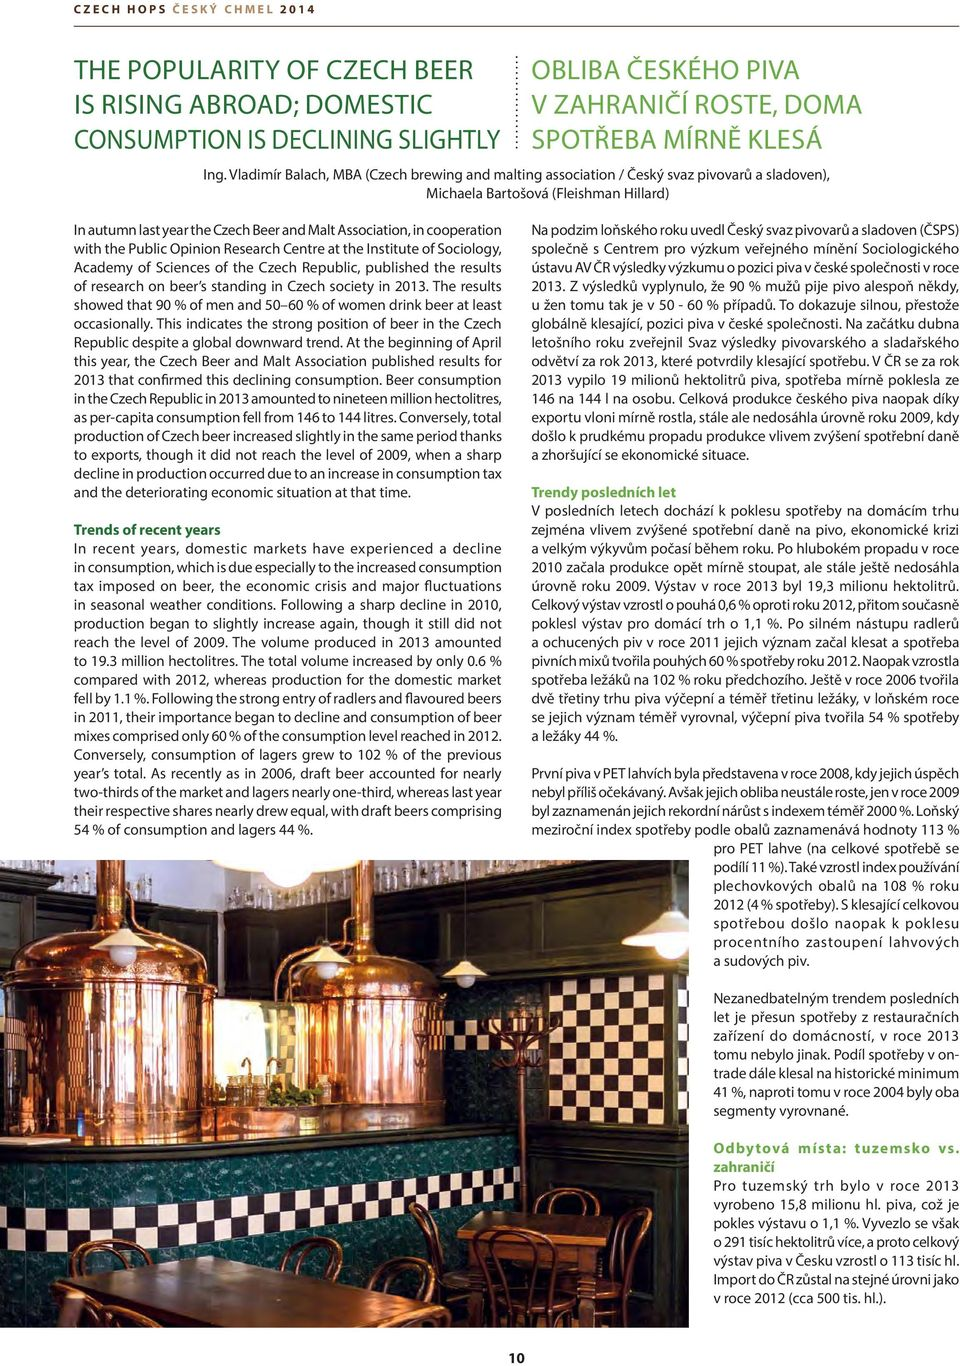 cooperation with the Public Opinion Research Centre at the Institute of Sociology, Academy of Sciences of the Czech Republic, published the results of research on beer s standing in Czech society in